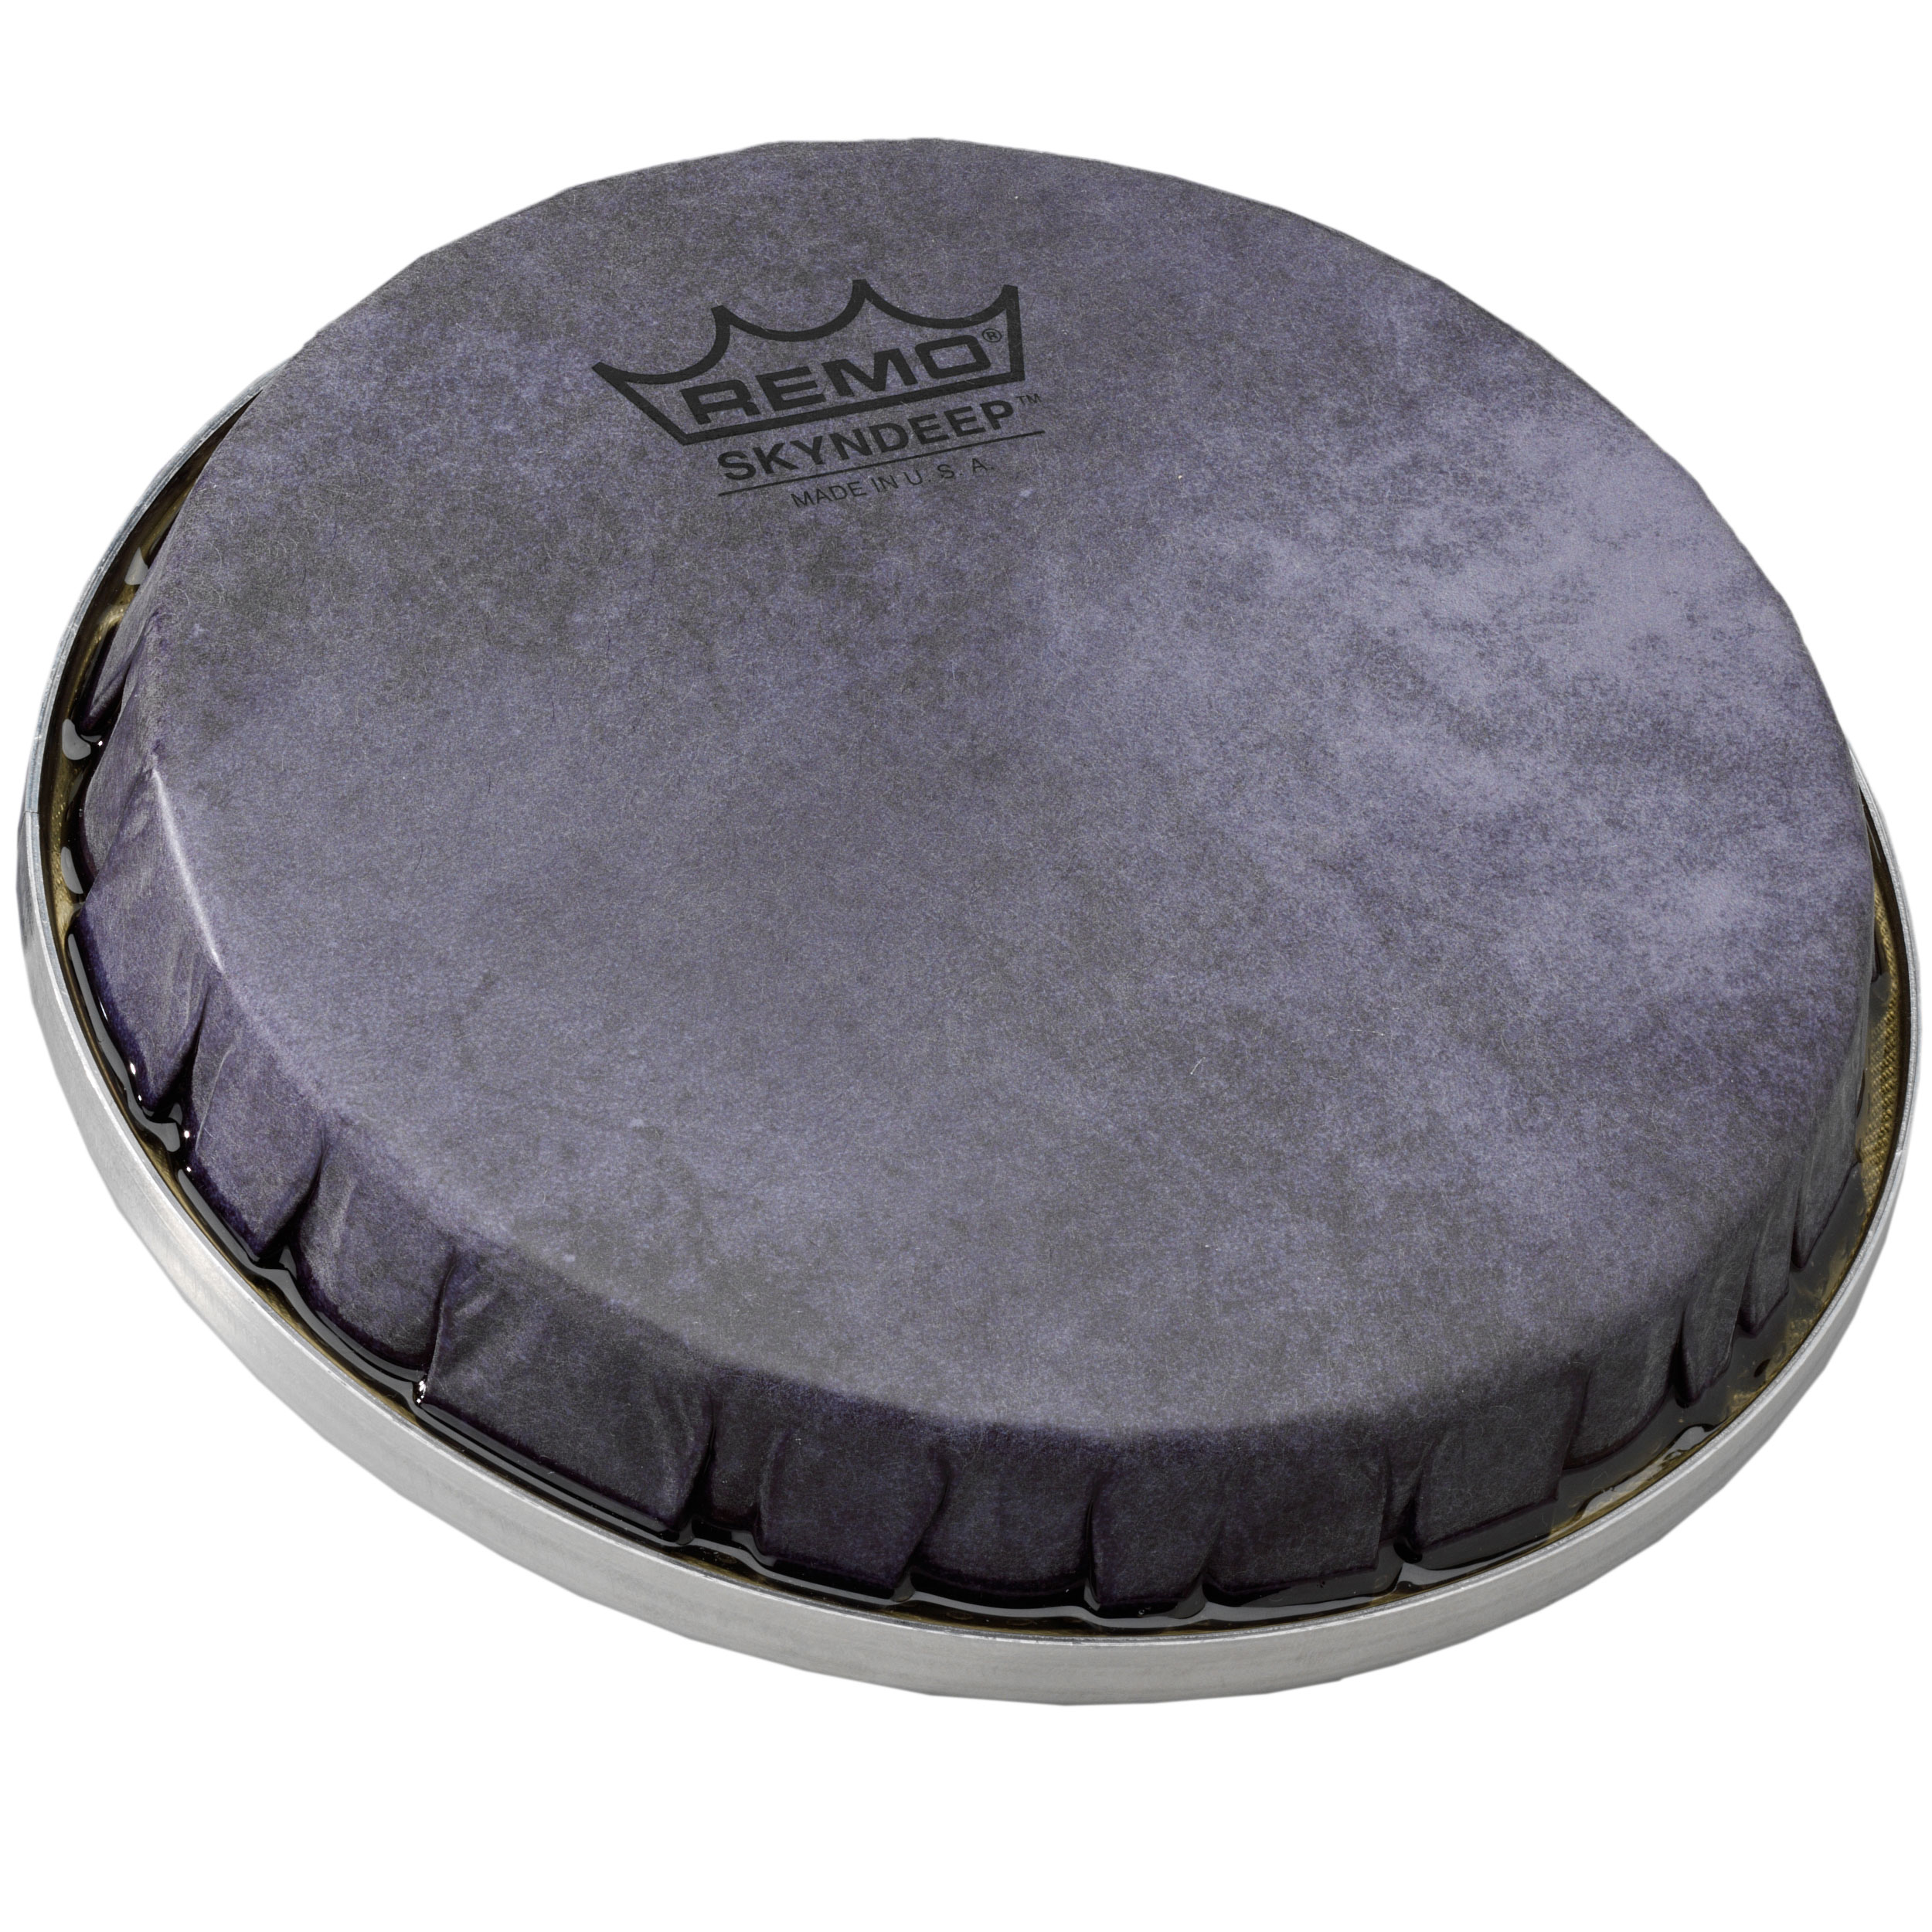 "Remo 8.5"" R-Series Skyndeep Bongo Drum Head with Black Calfskin Graphic"